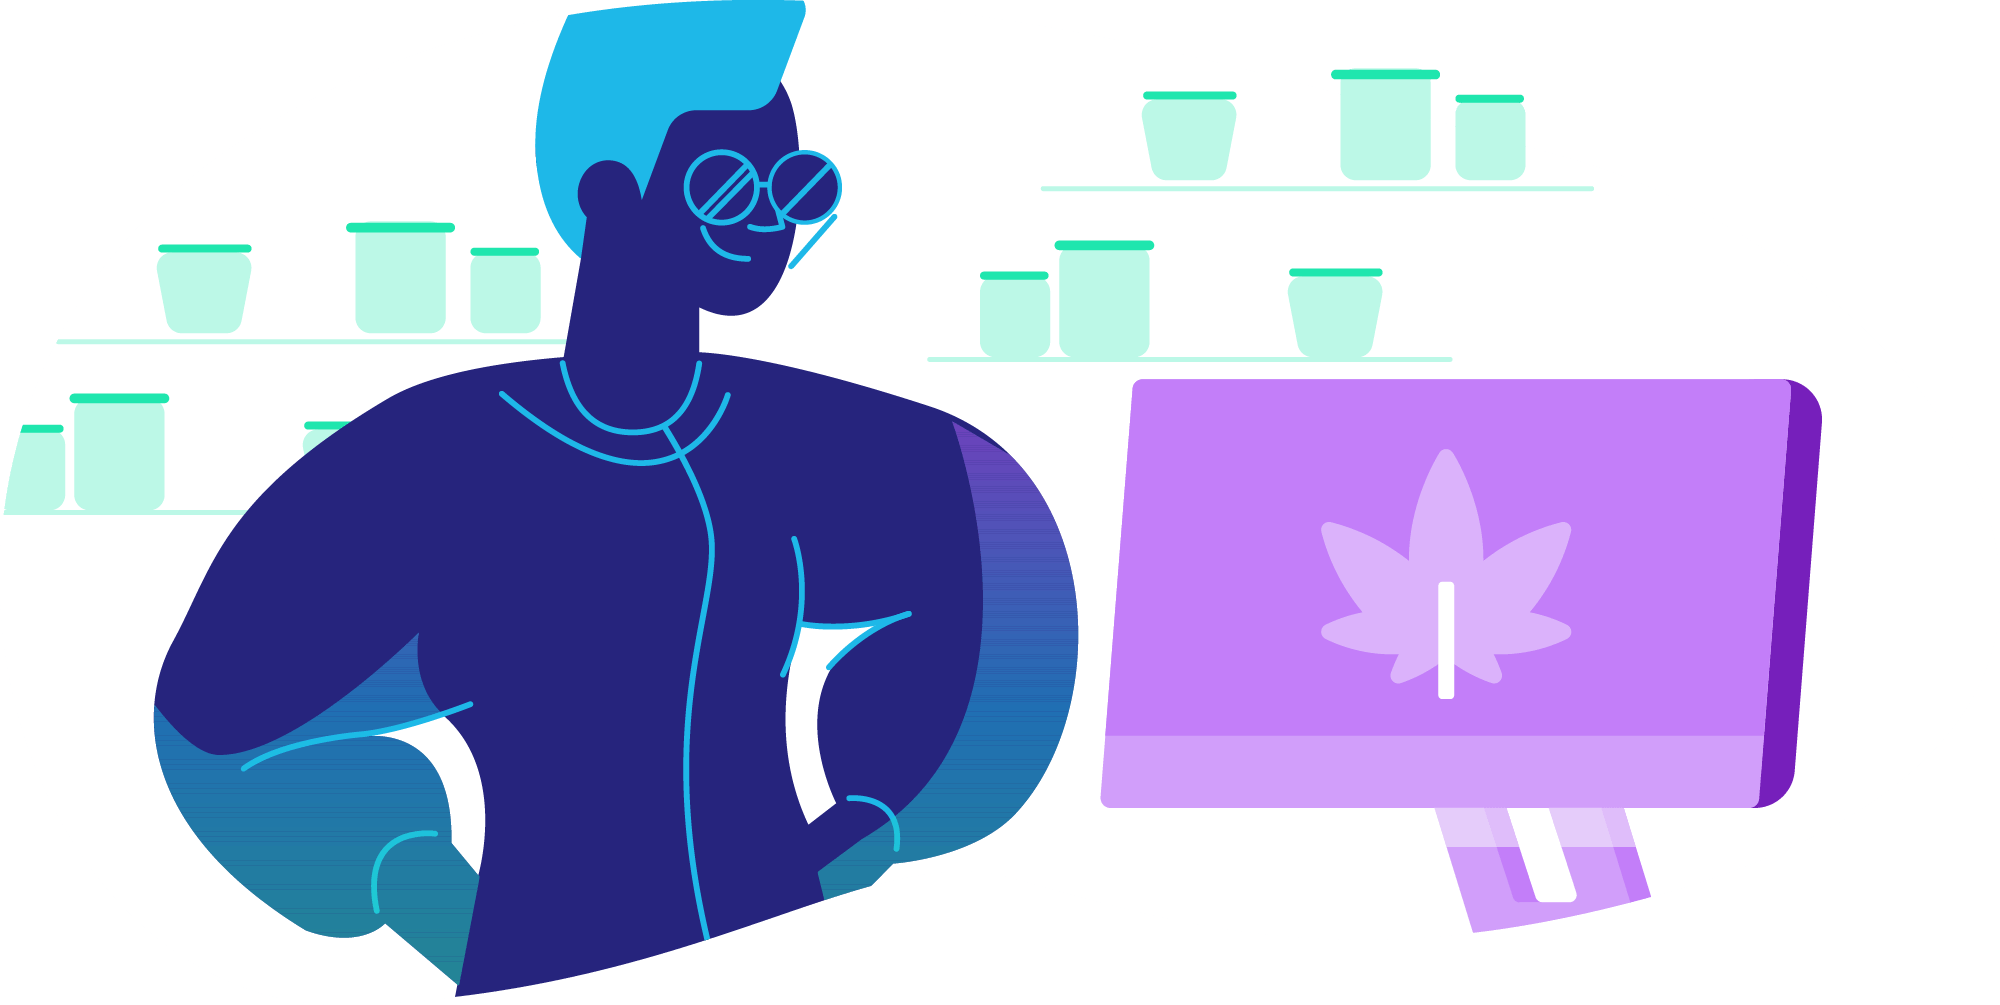 tech in the cannabis industry illustration